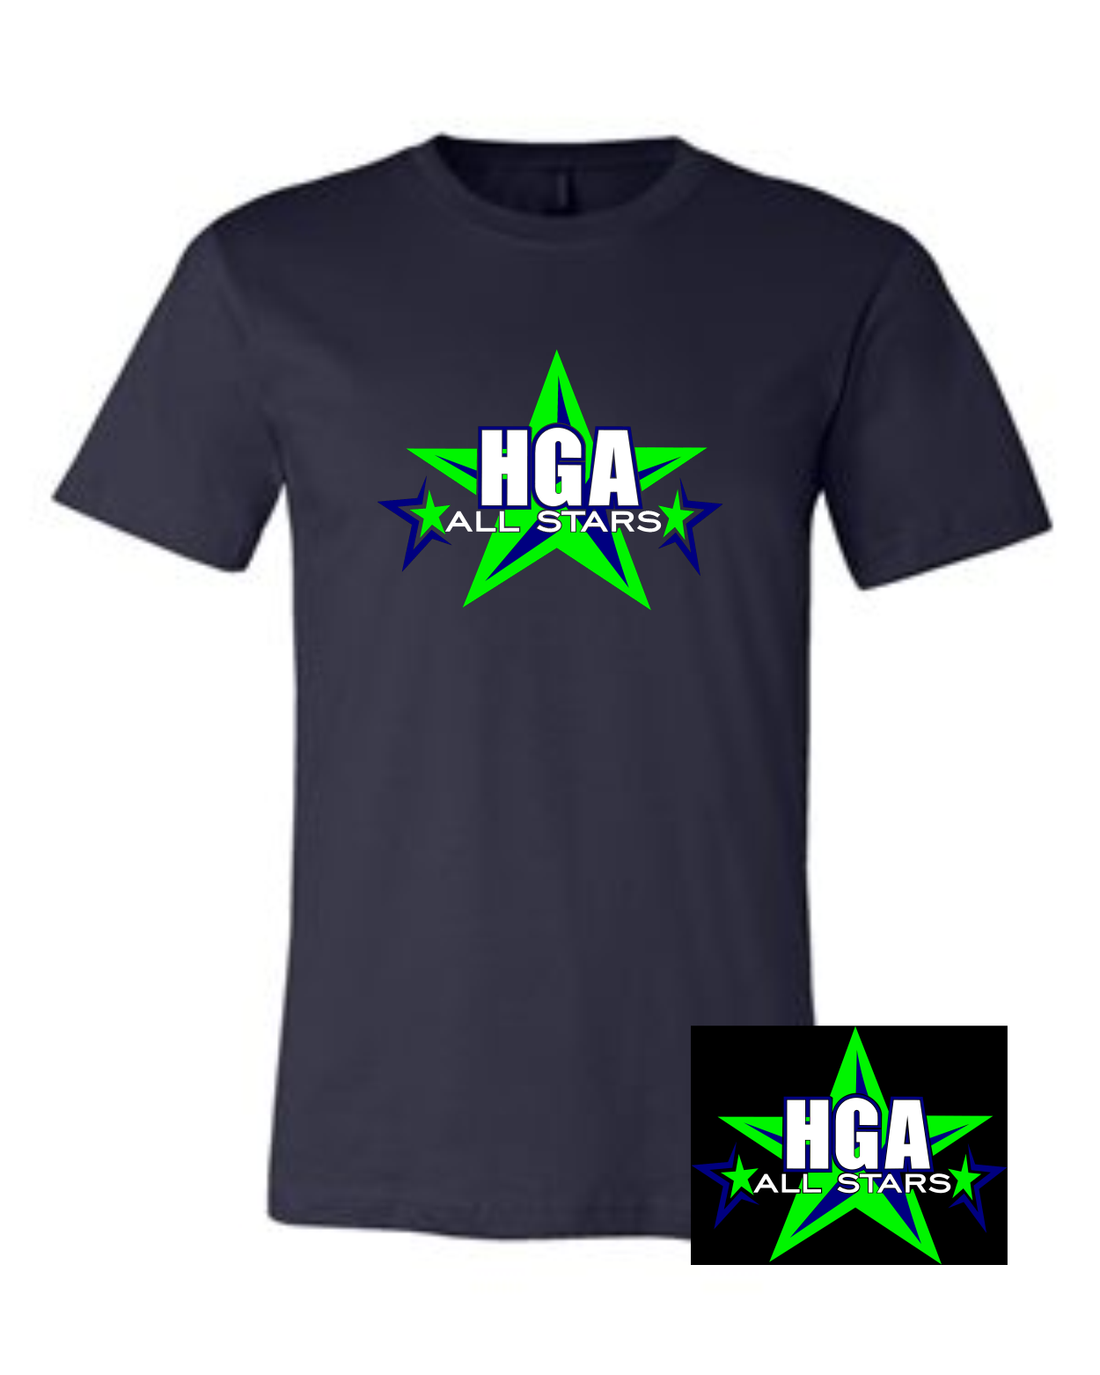 HGA ALLSTARS SCREEN PRINT TEE 2